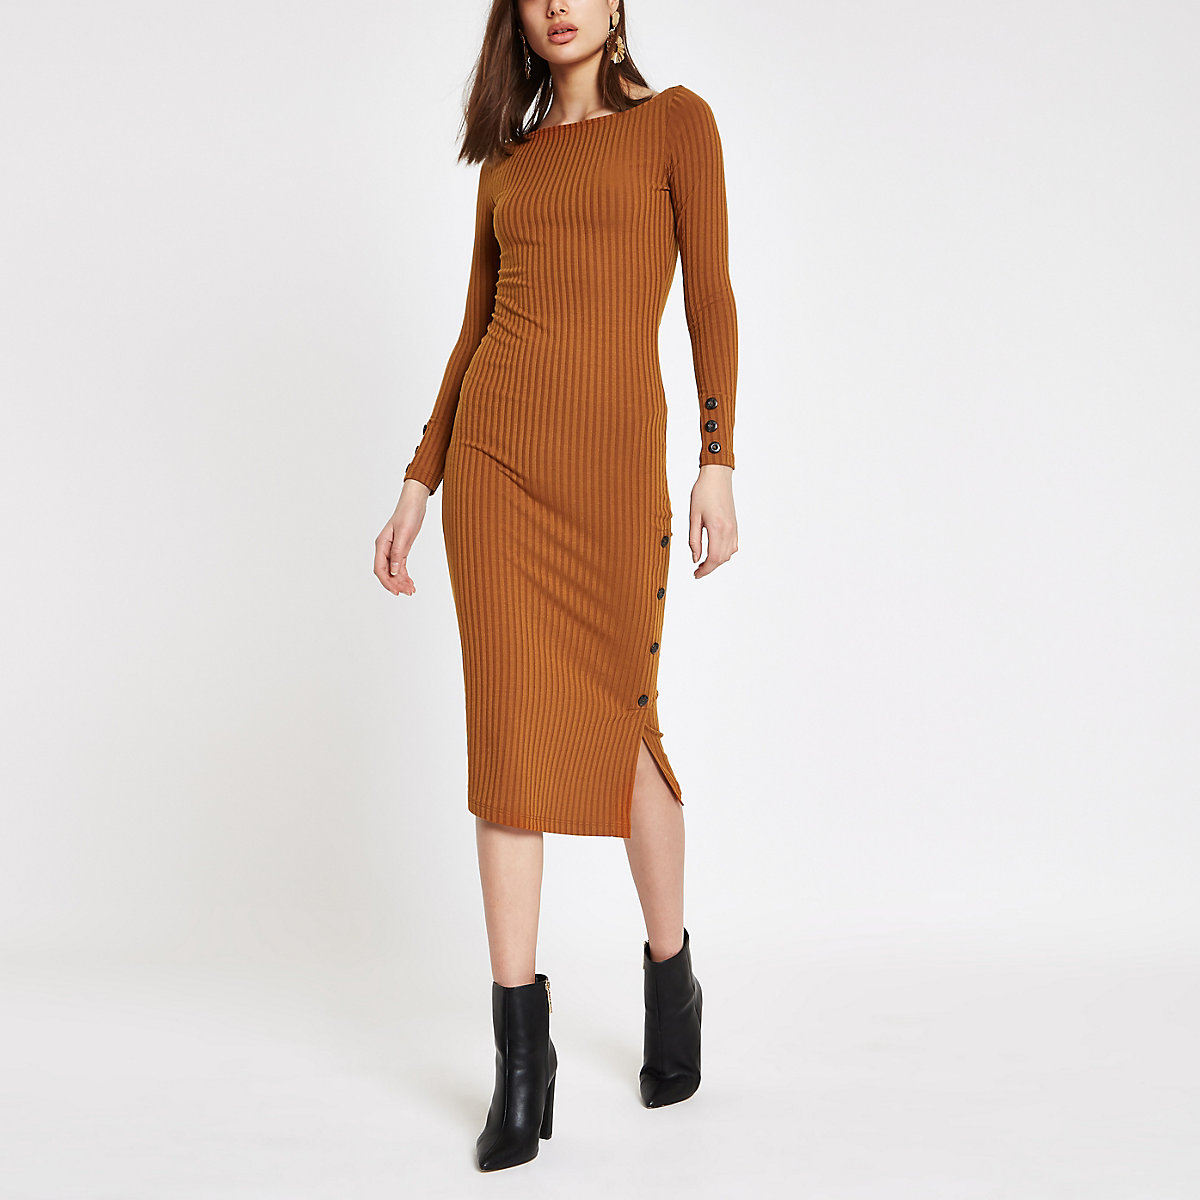 93b6e29c0f1 Dark orange rib button side midi dress - Bodycon Dresses - Dresses - women